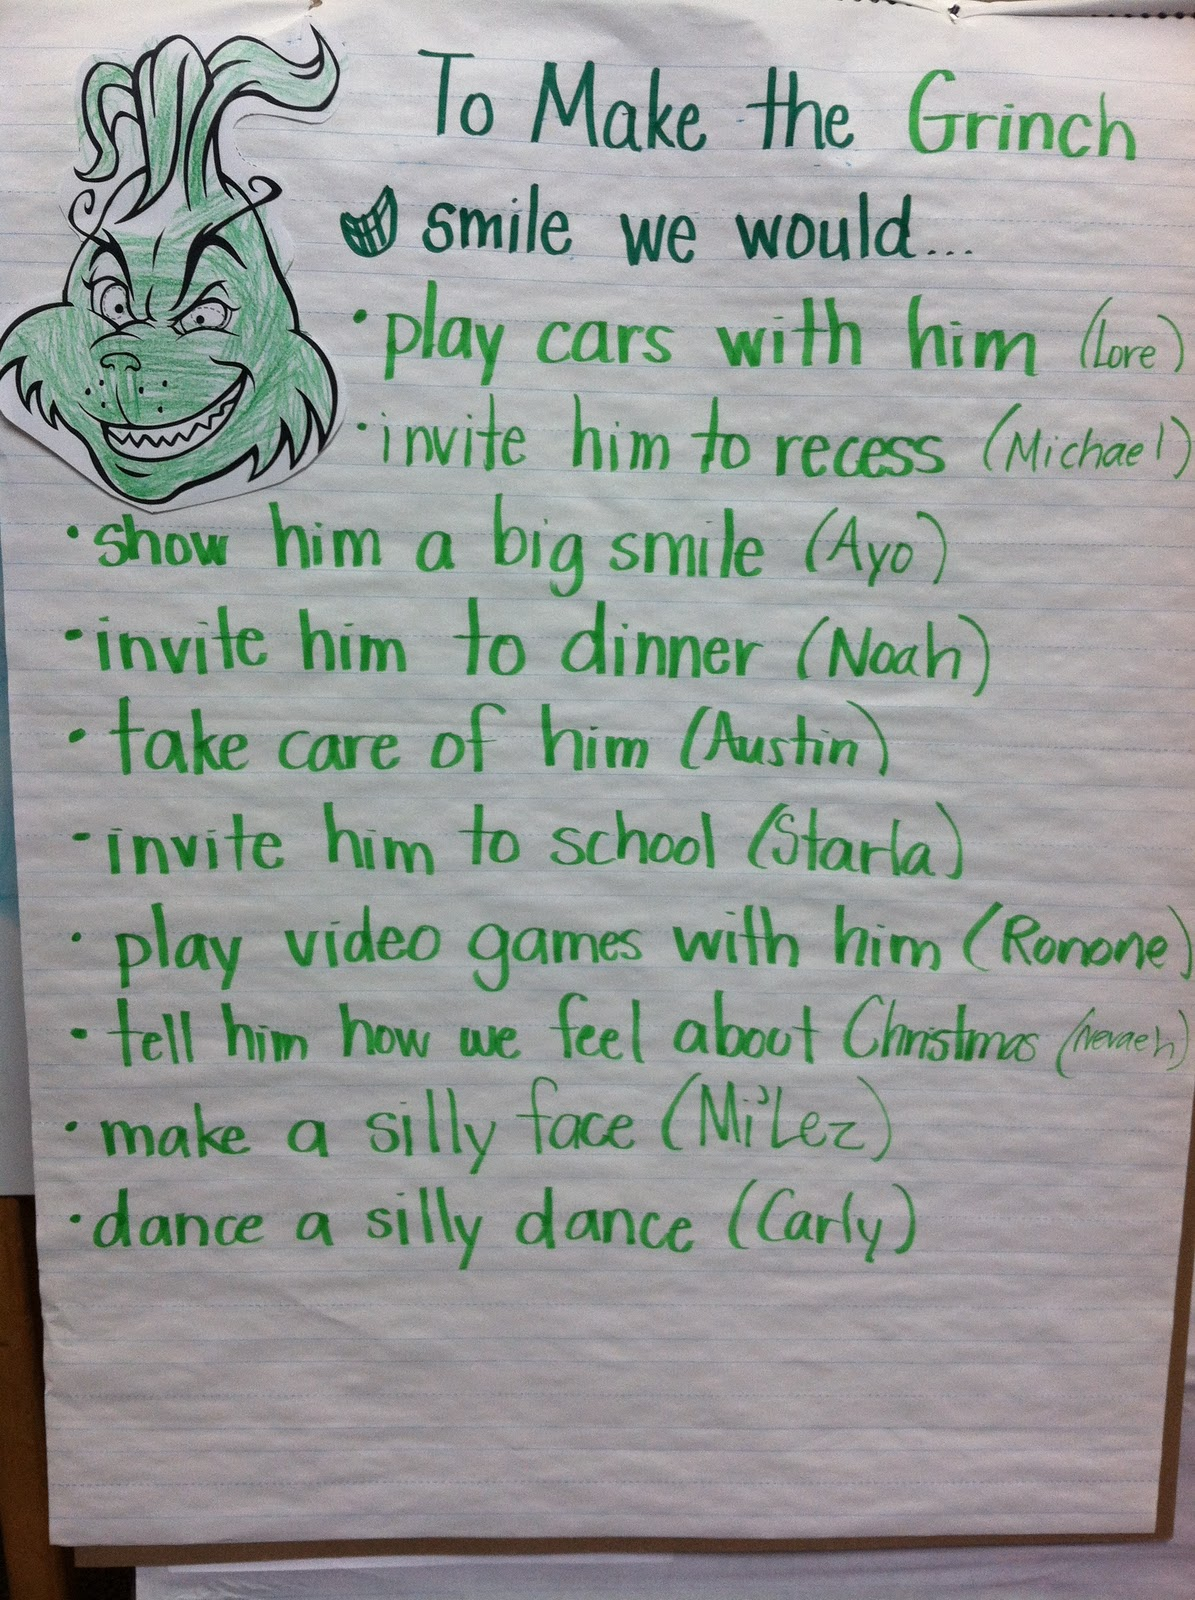 The Grinch Holiday Worksheet